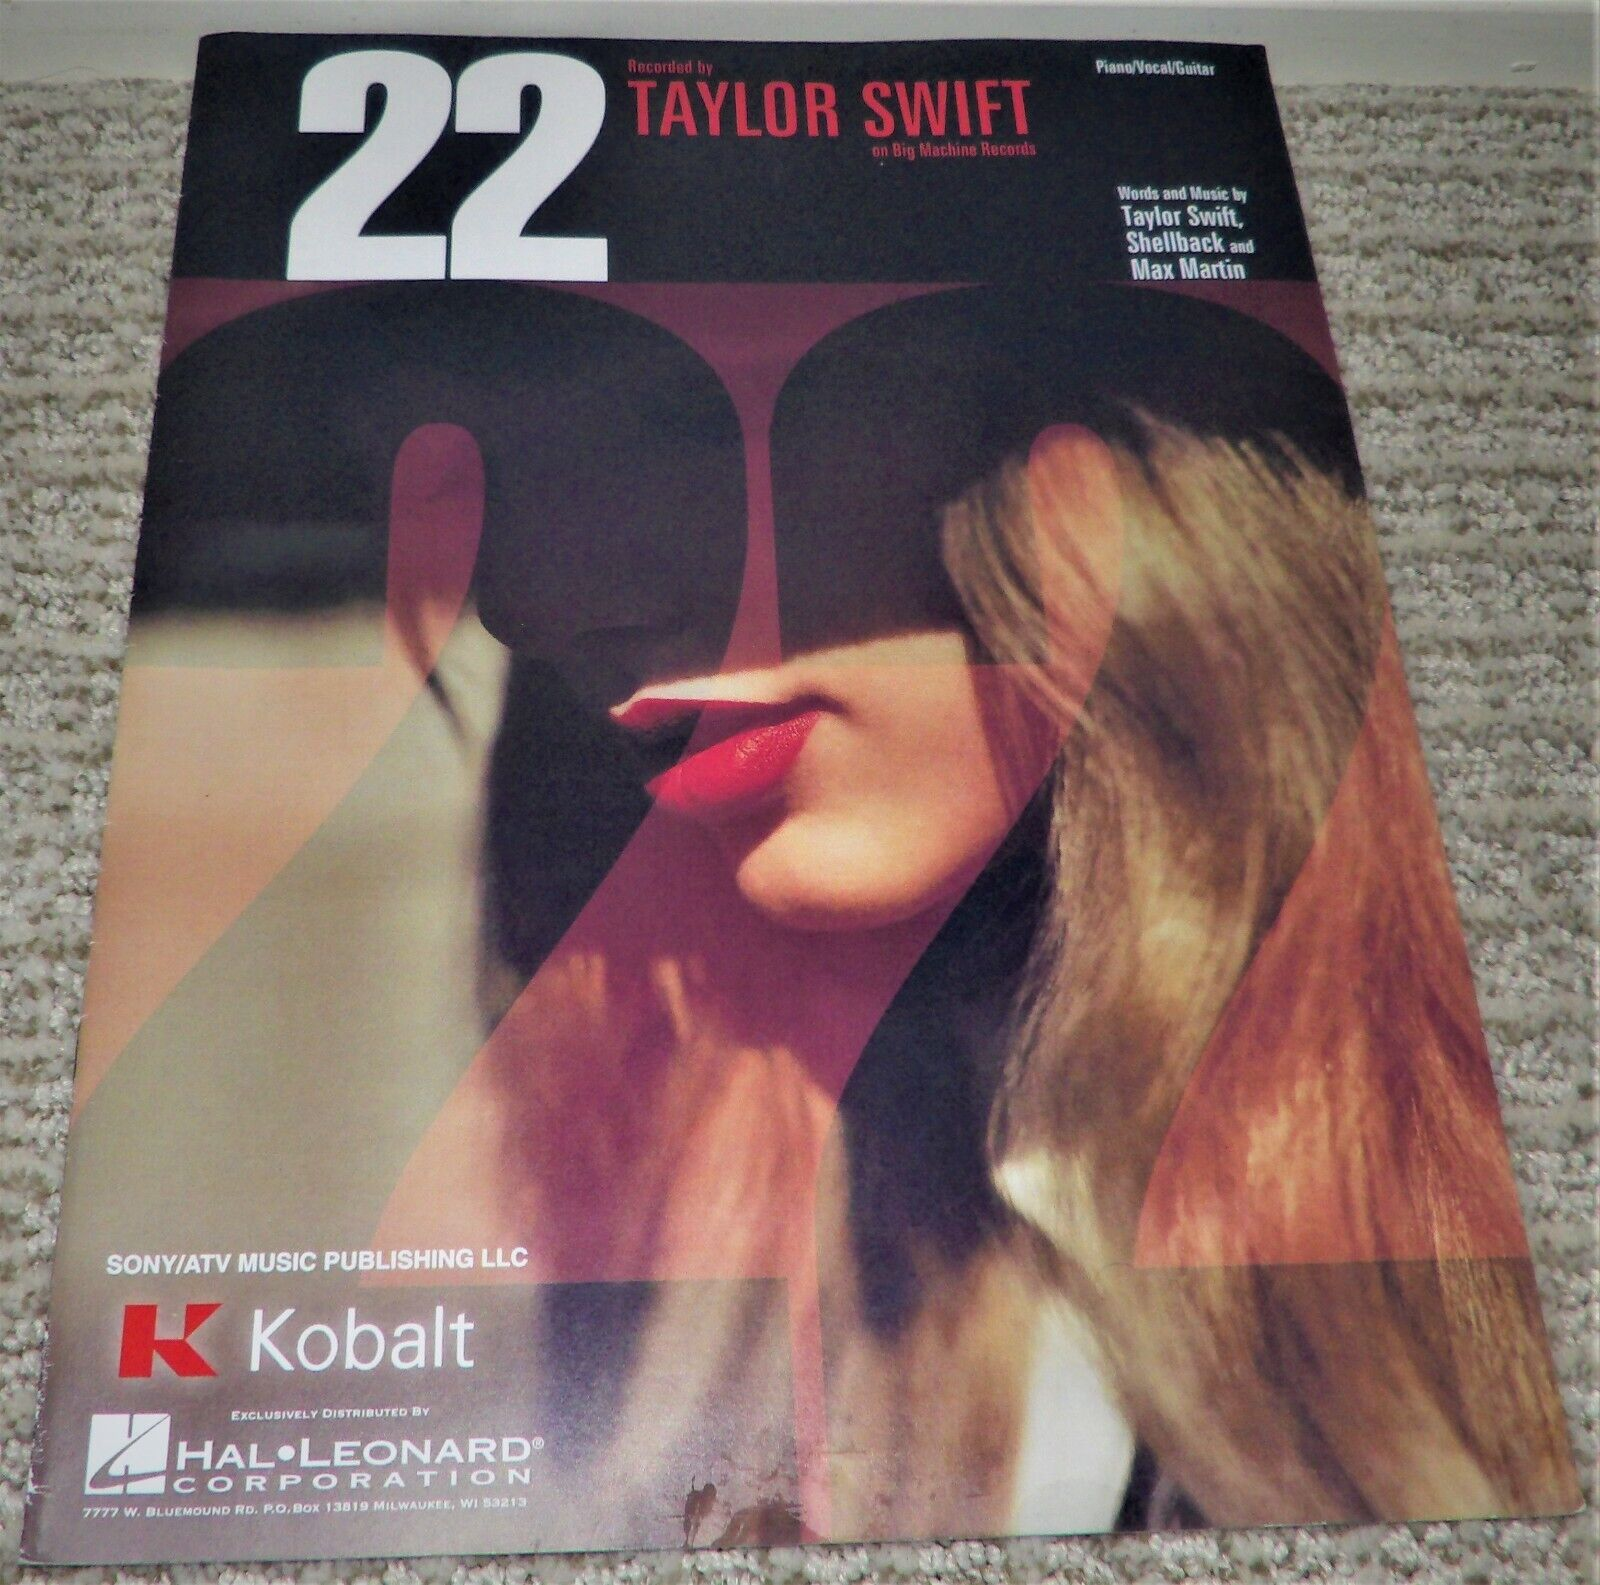 22 By Taylor Swift - Sheet Music Piano, Vocal, Guitar - Very Good Condition - $7.99